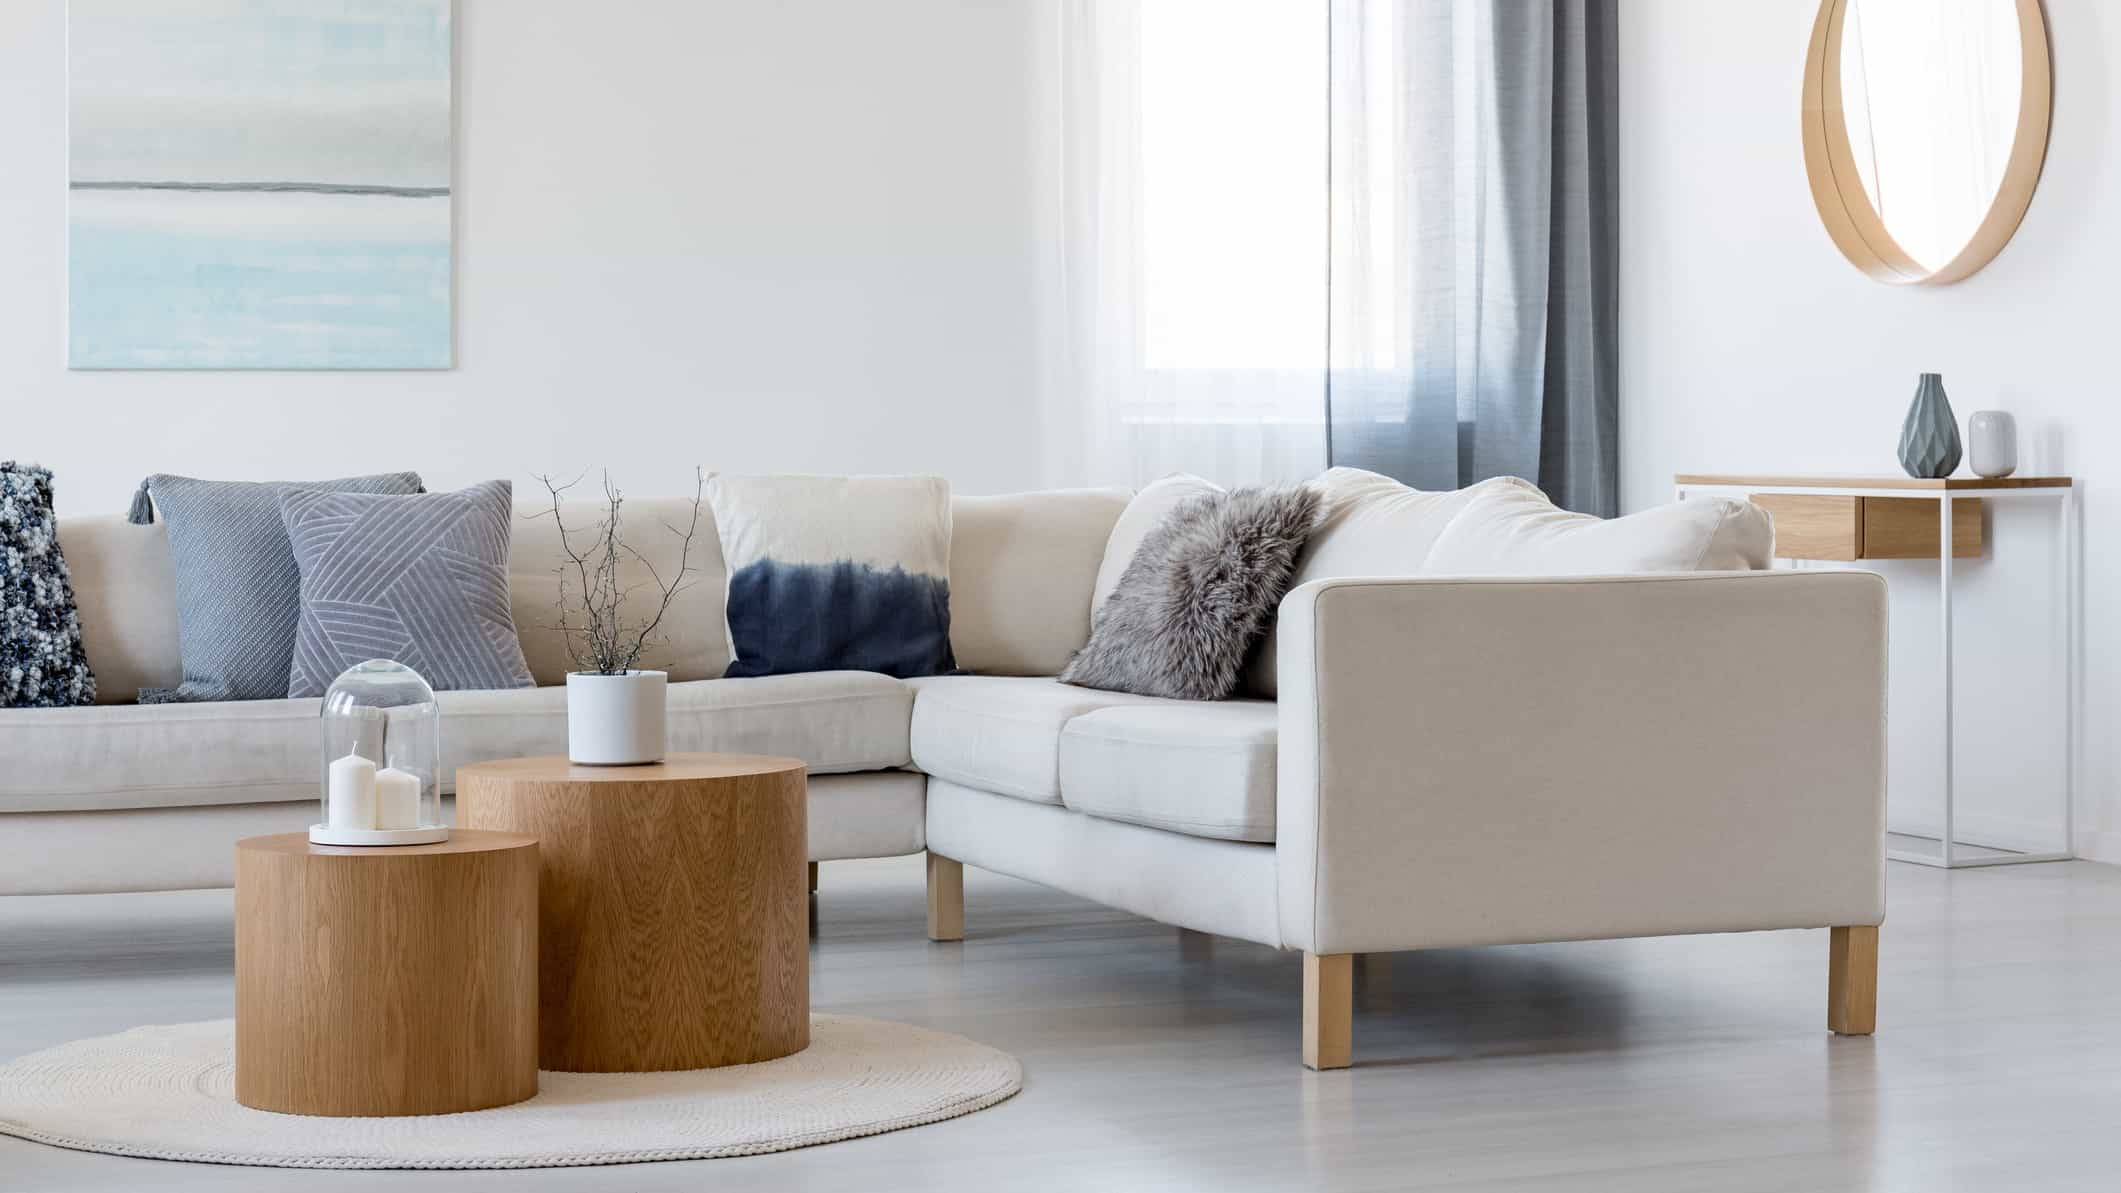 living room with sofa, cushions and coffee table and decor items